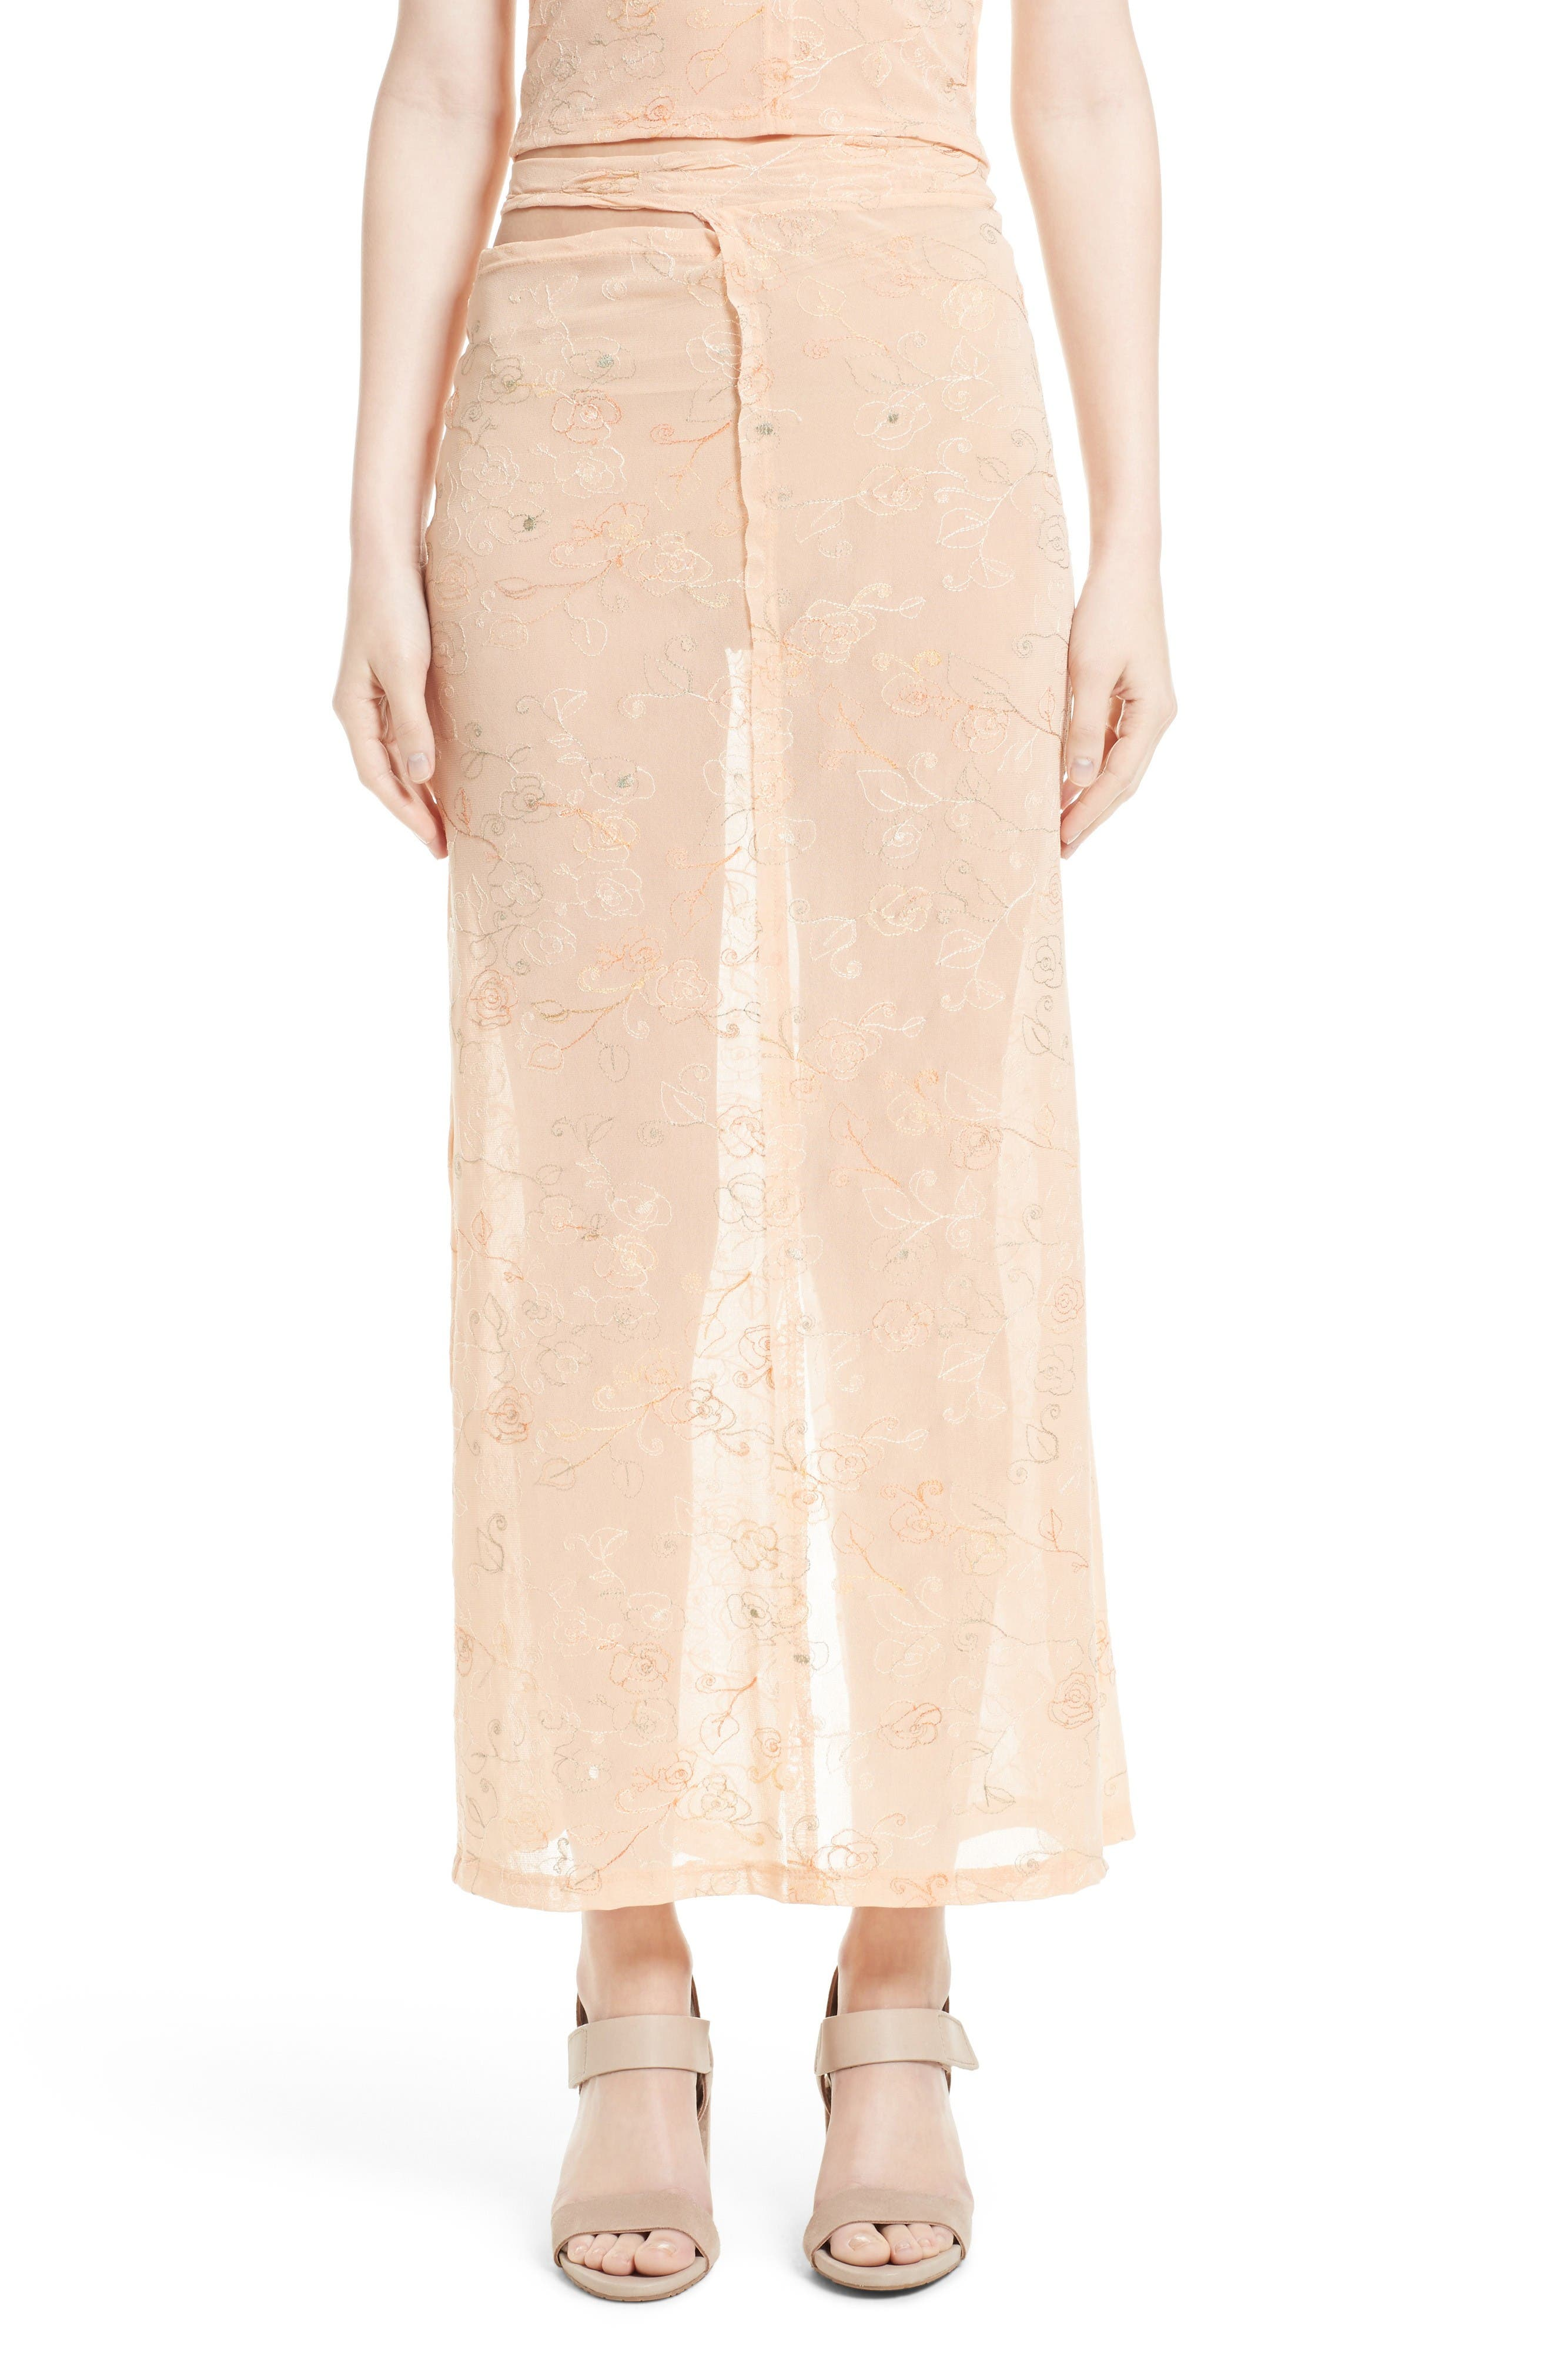 ECKHAUS LATTA Embroidered Midi Skirt